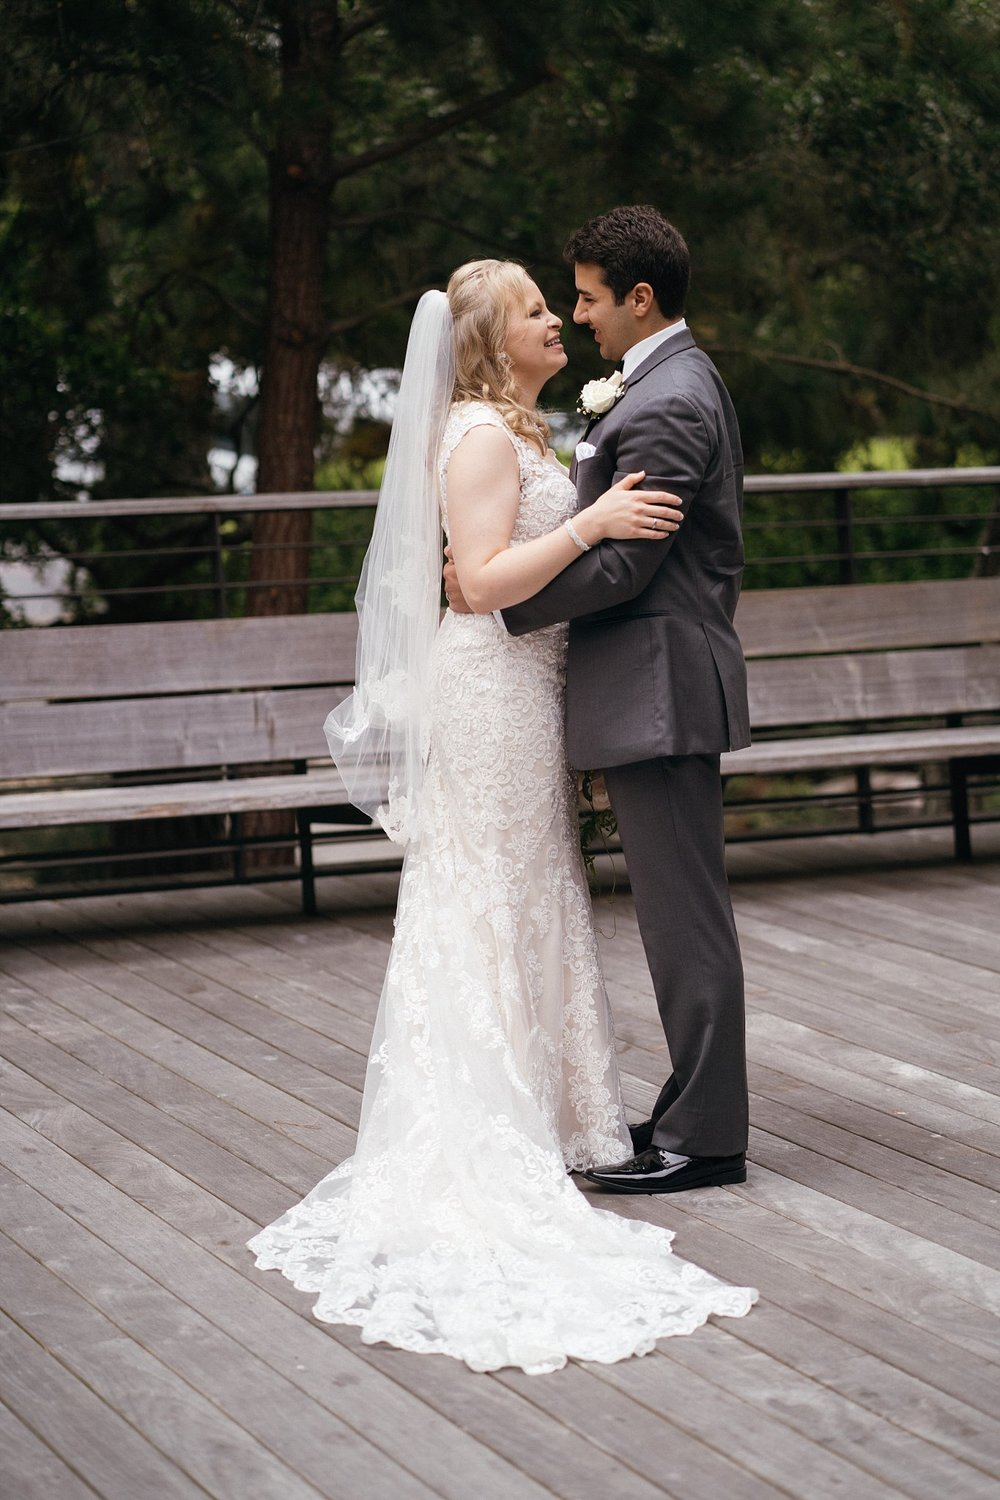 monterey-wedding-photographer-pebble-beach-church-in-the-forest-wedding-bride-groom-morgan-anthony_0028.jpg